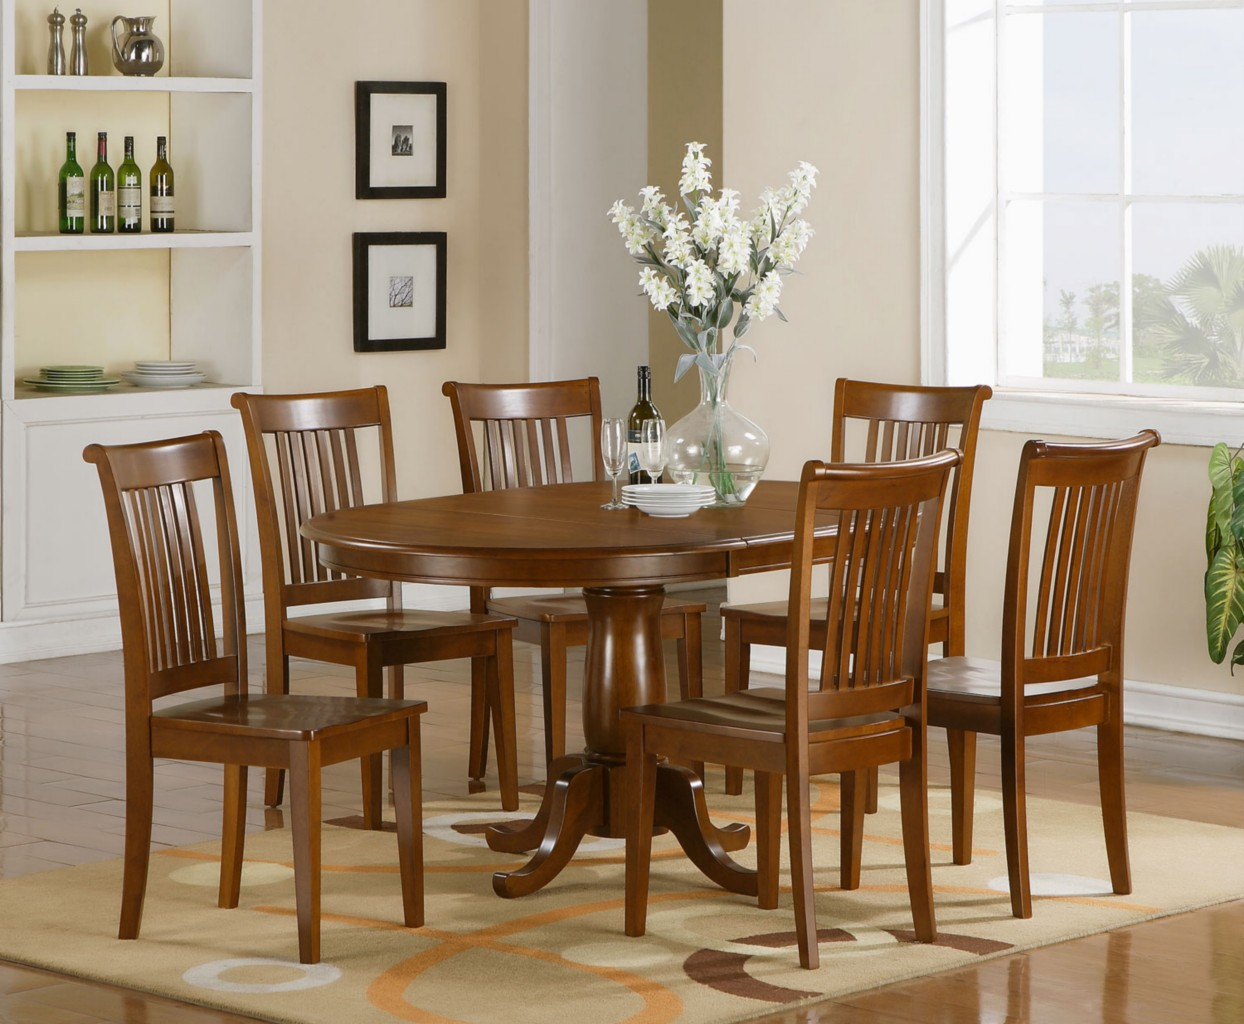 7 pc oval dinette dining room set table and 6 chairs. Black Bedroom Furniture Sets. Home Design Ideas